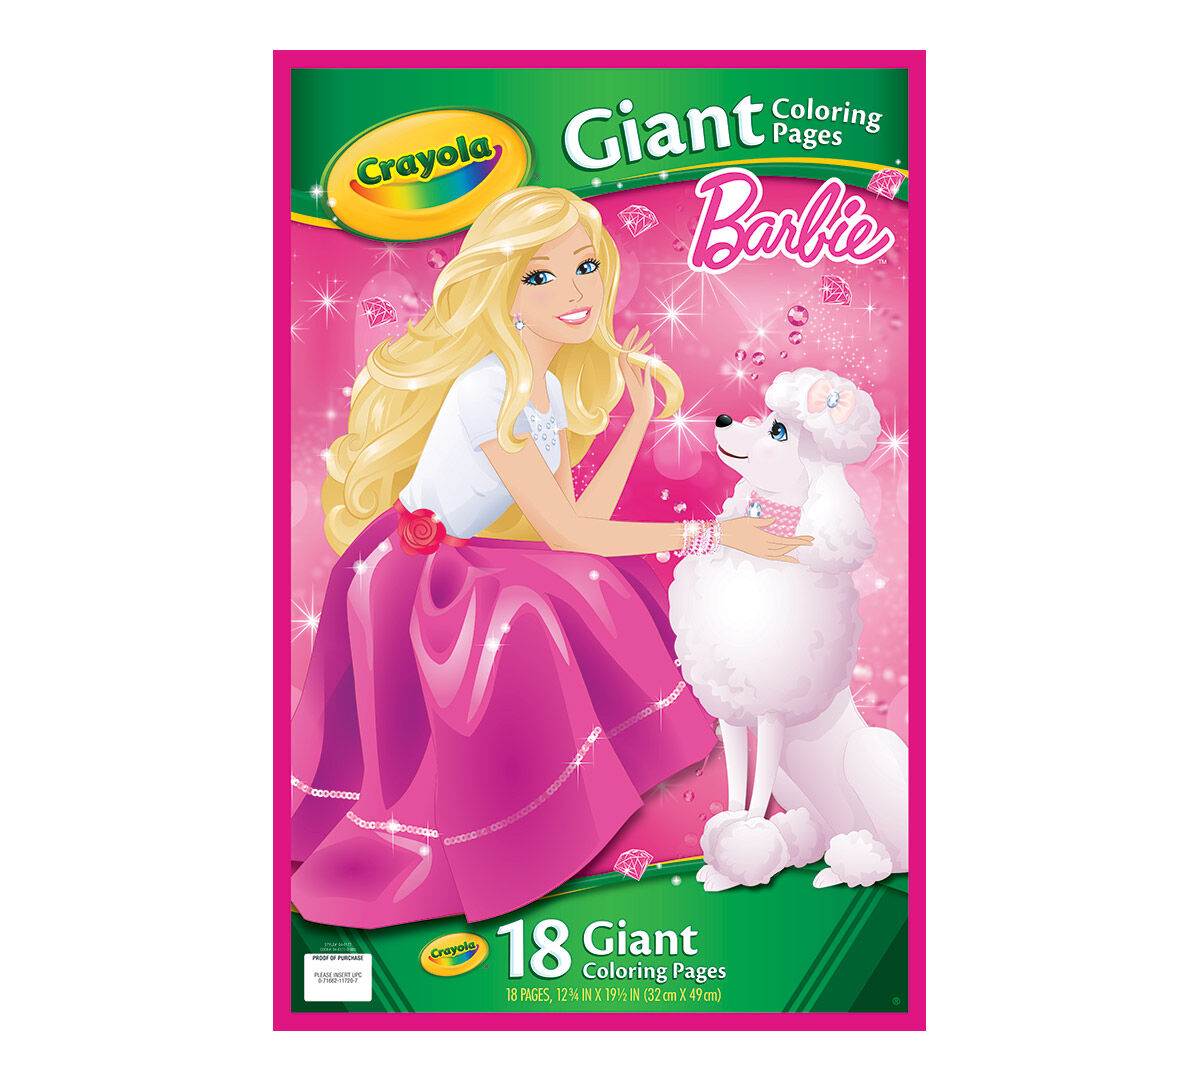 Crayola Giant Coloring Pages Barbie : Giant coloring pages barbie crayola